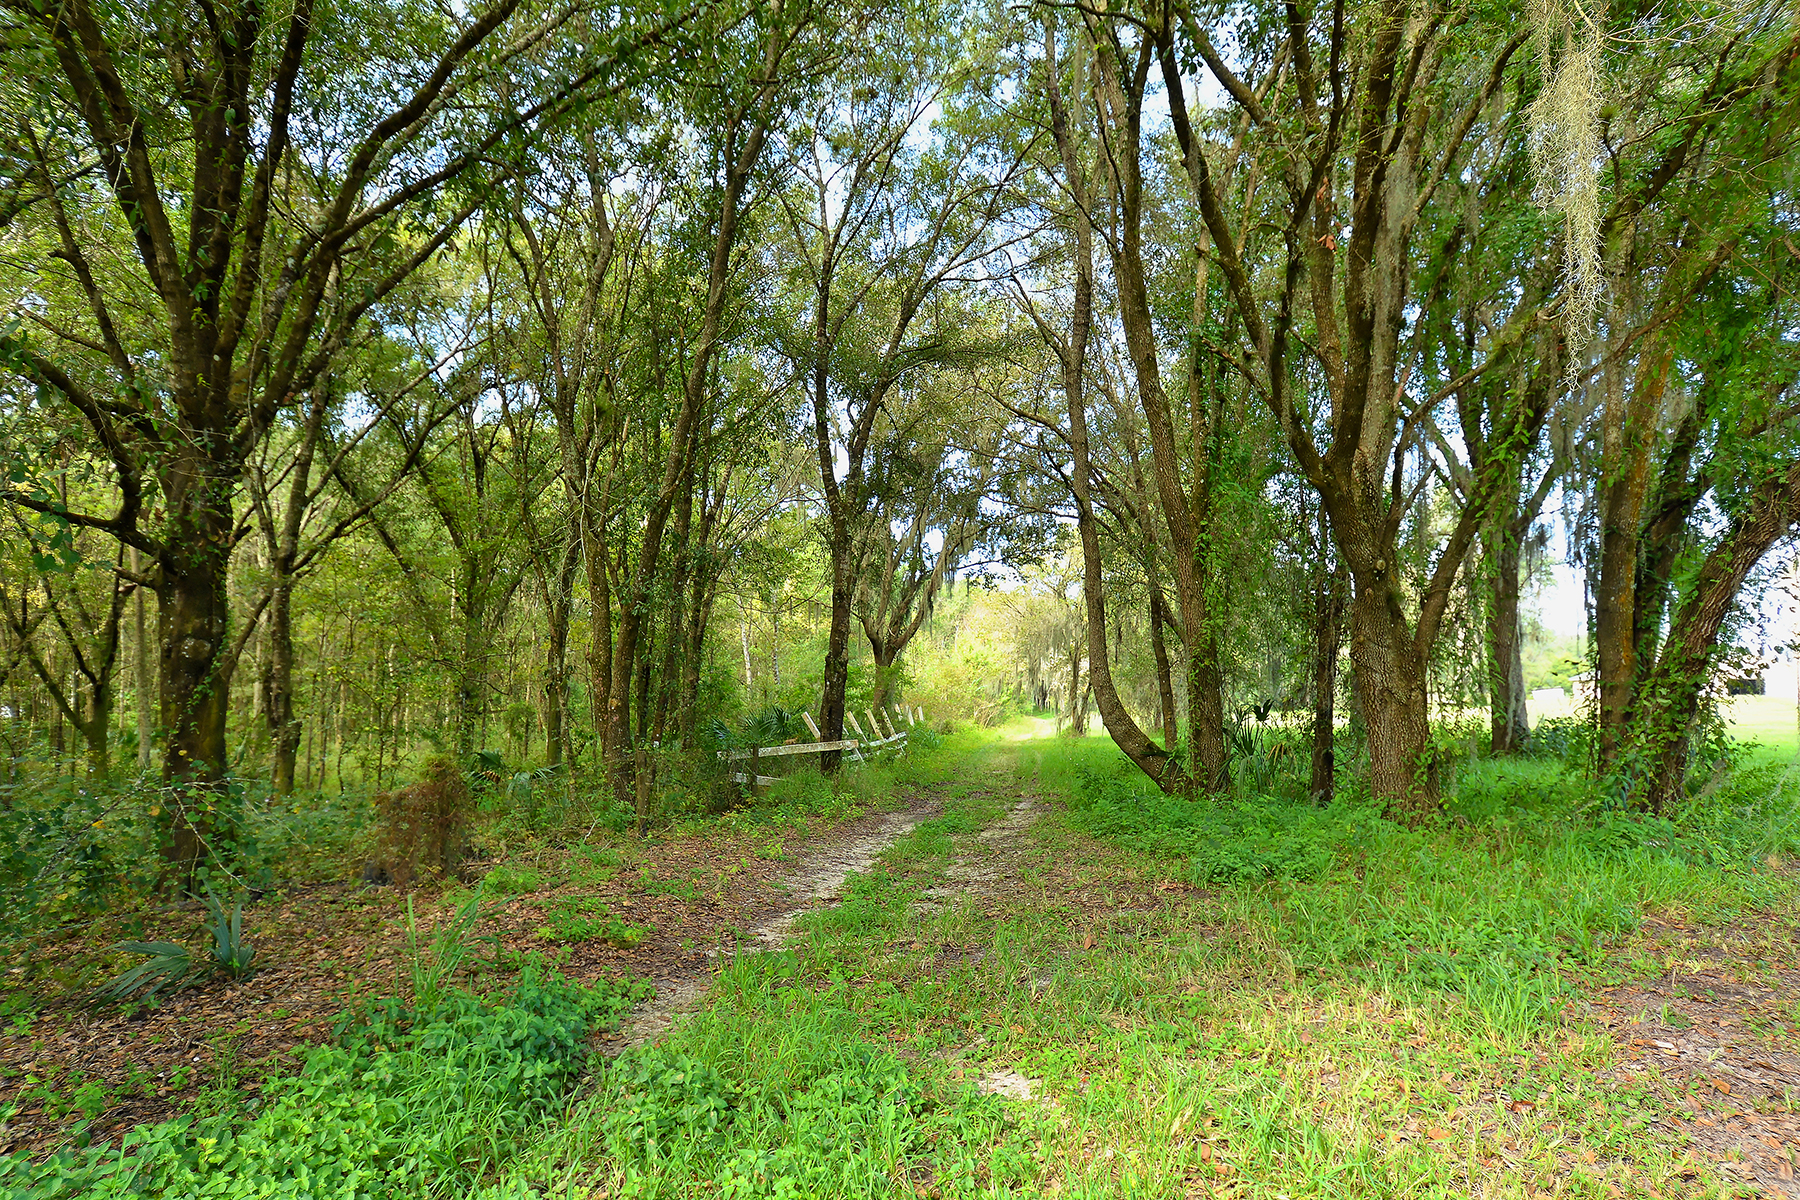 Land for Sale at PARRISH 12805 E 57th St 0 Parrish, Florida, 34219 United States